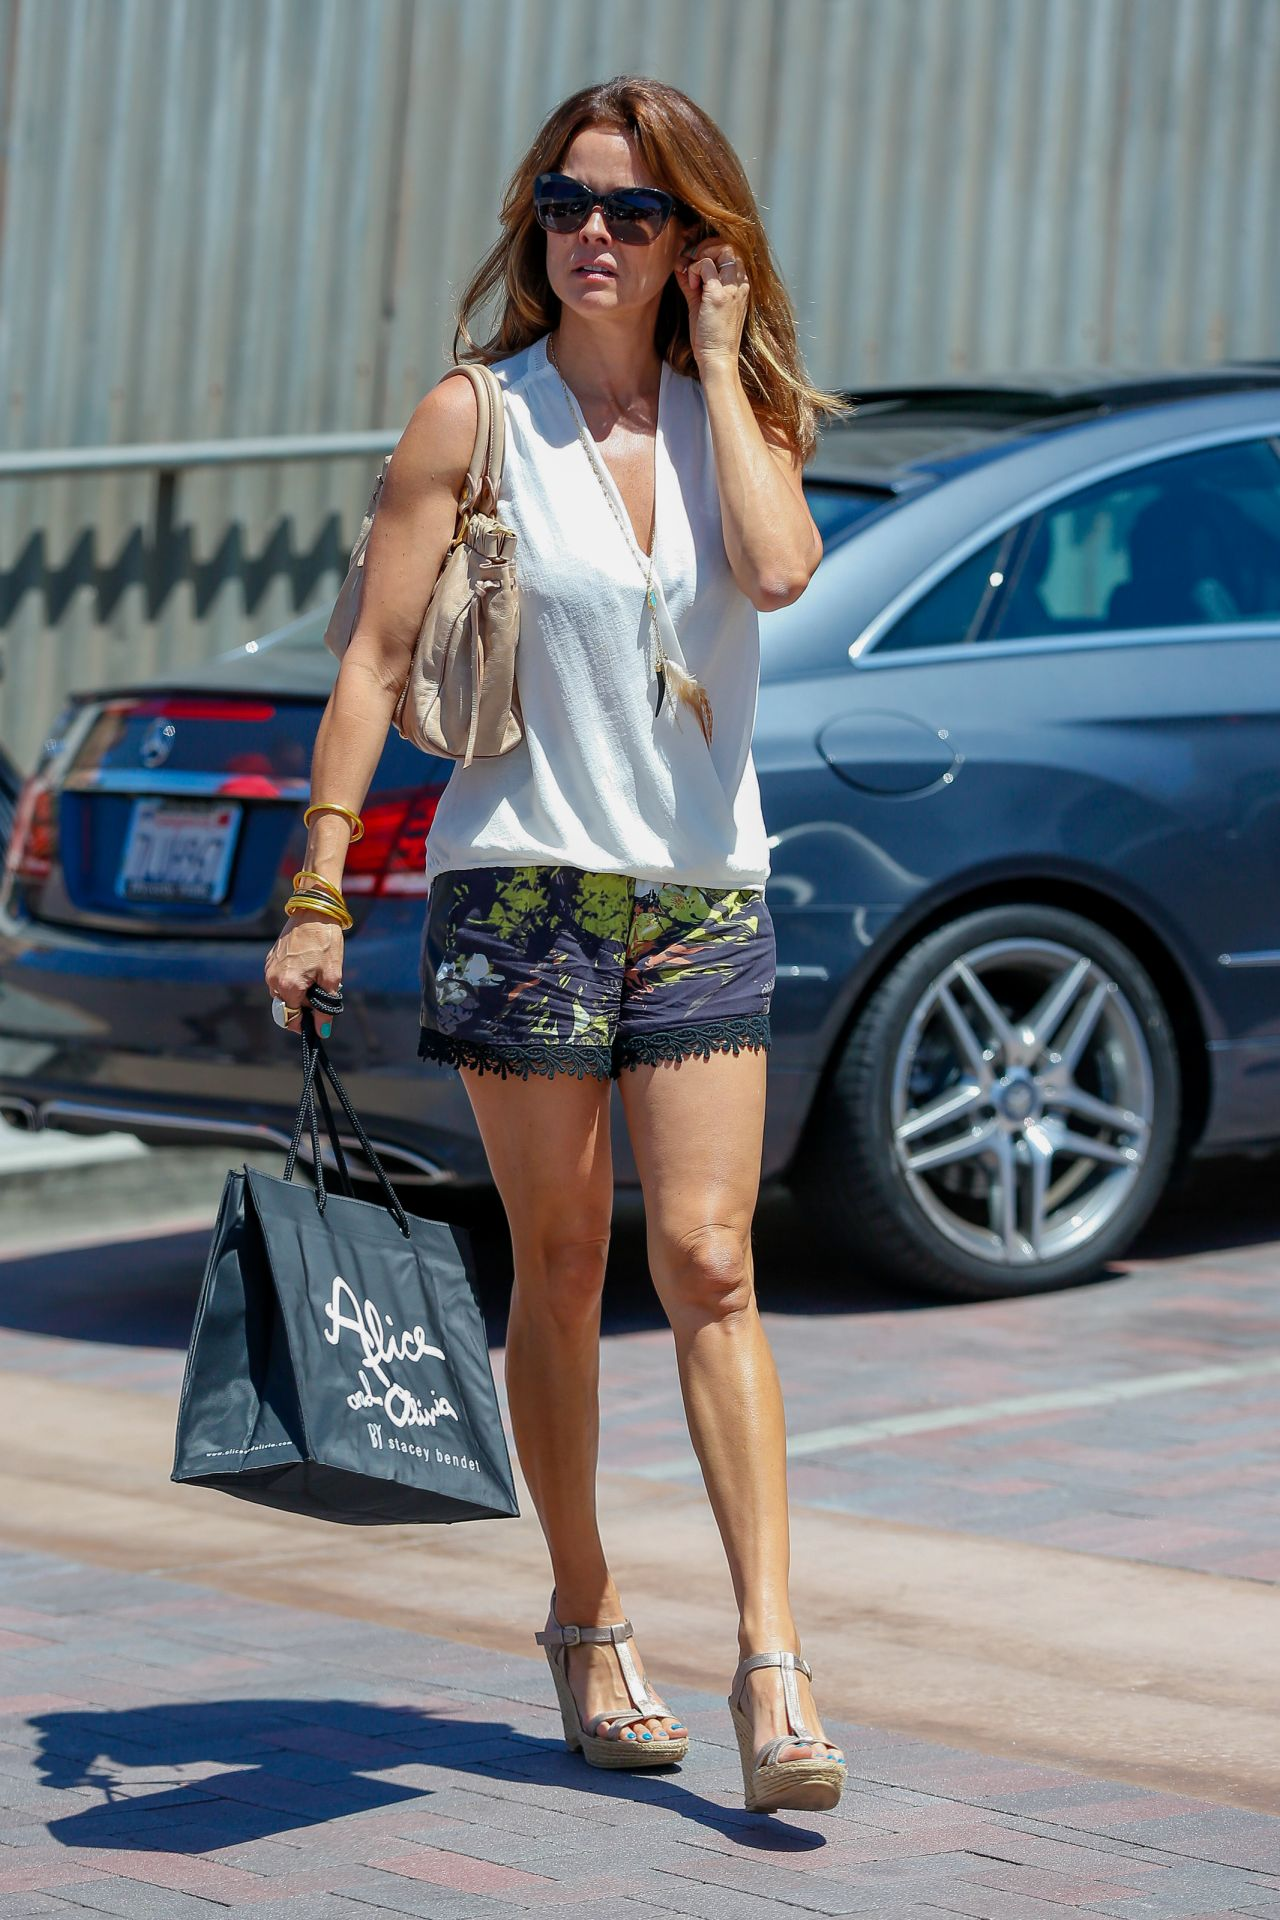 Brooke Burke Leggy In Shorts Shopping In Malibu 7 2 2016